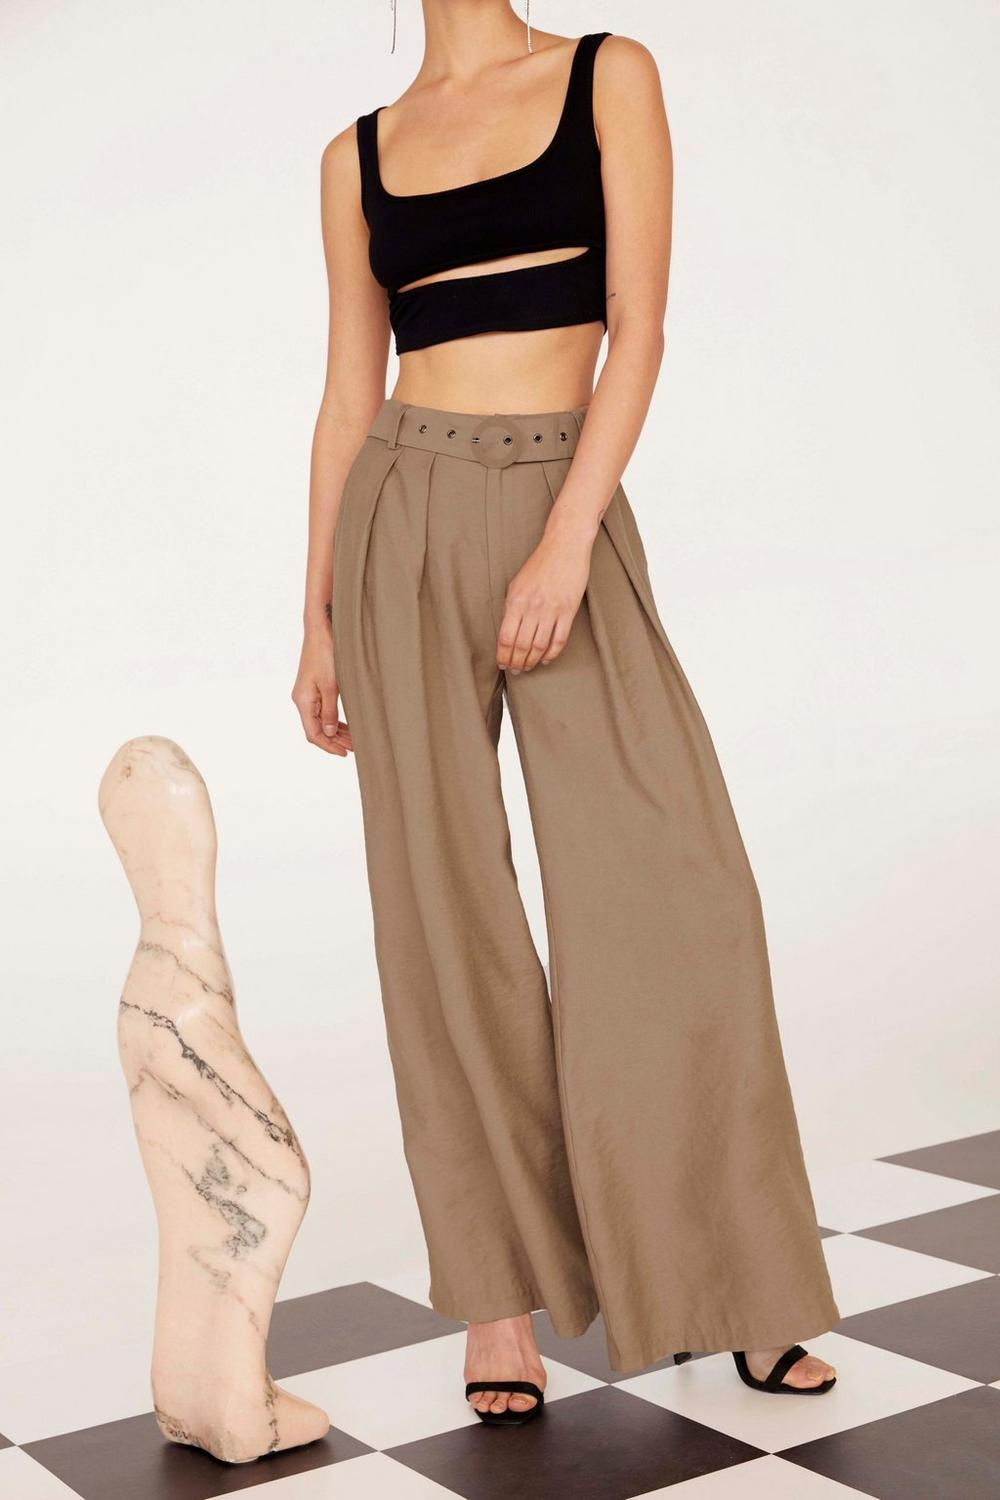 Business As Usual Wide Leg Pants, $40, Nasty Gal